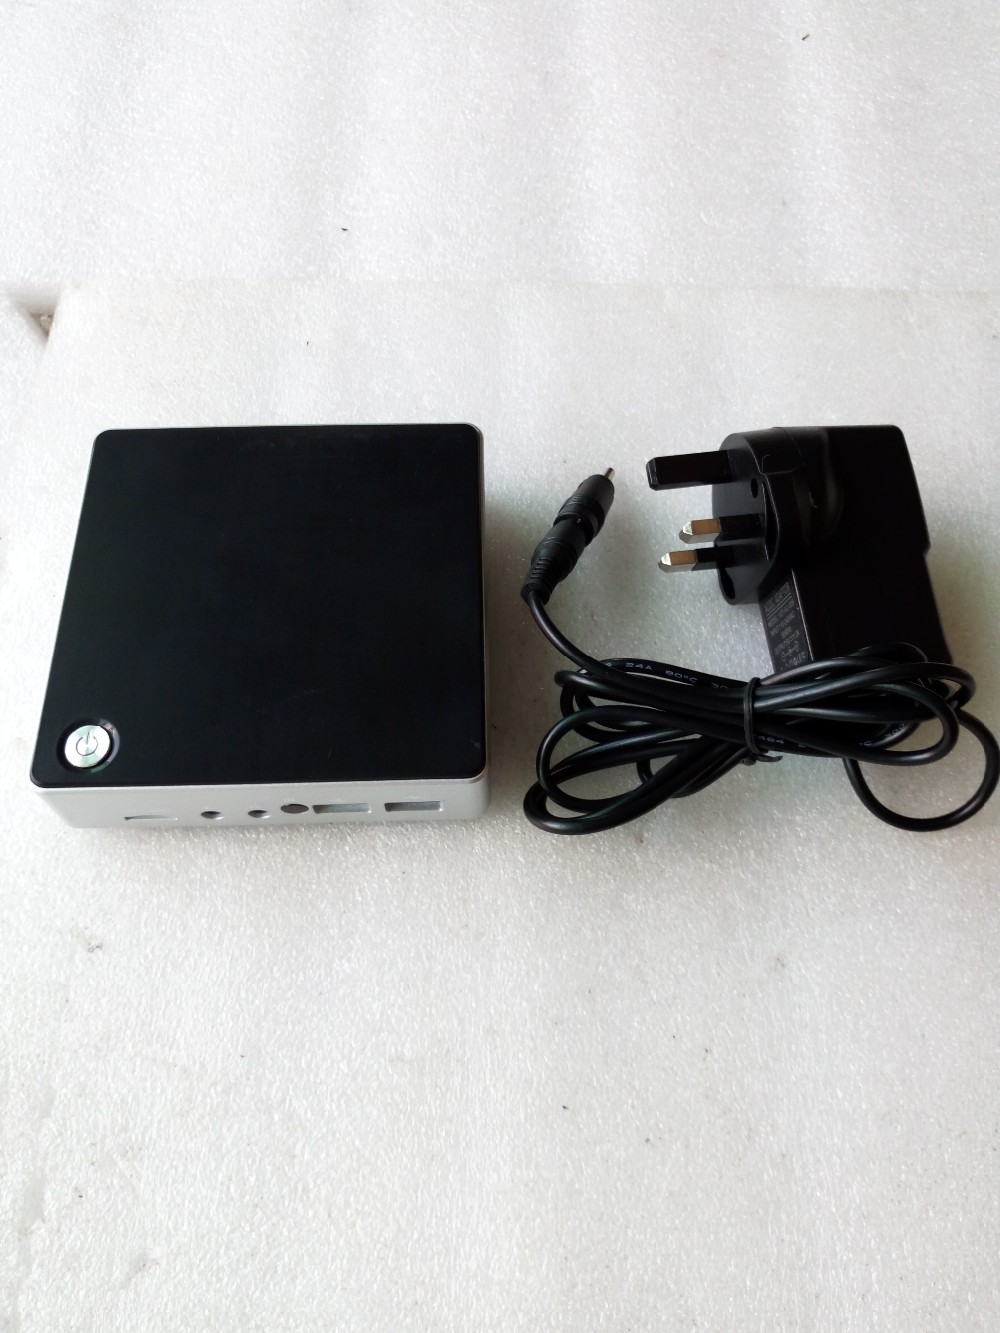 z8300 turbo 1.86 Ghz mini pc with 4g ram mini windows 8 win 10